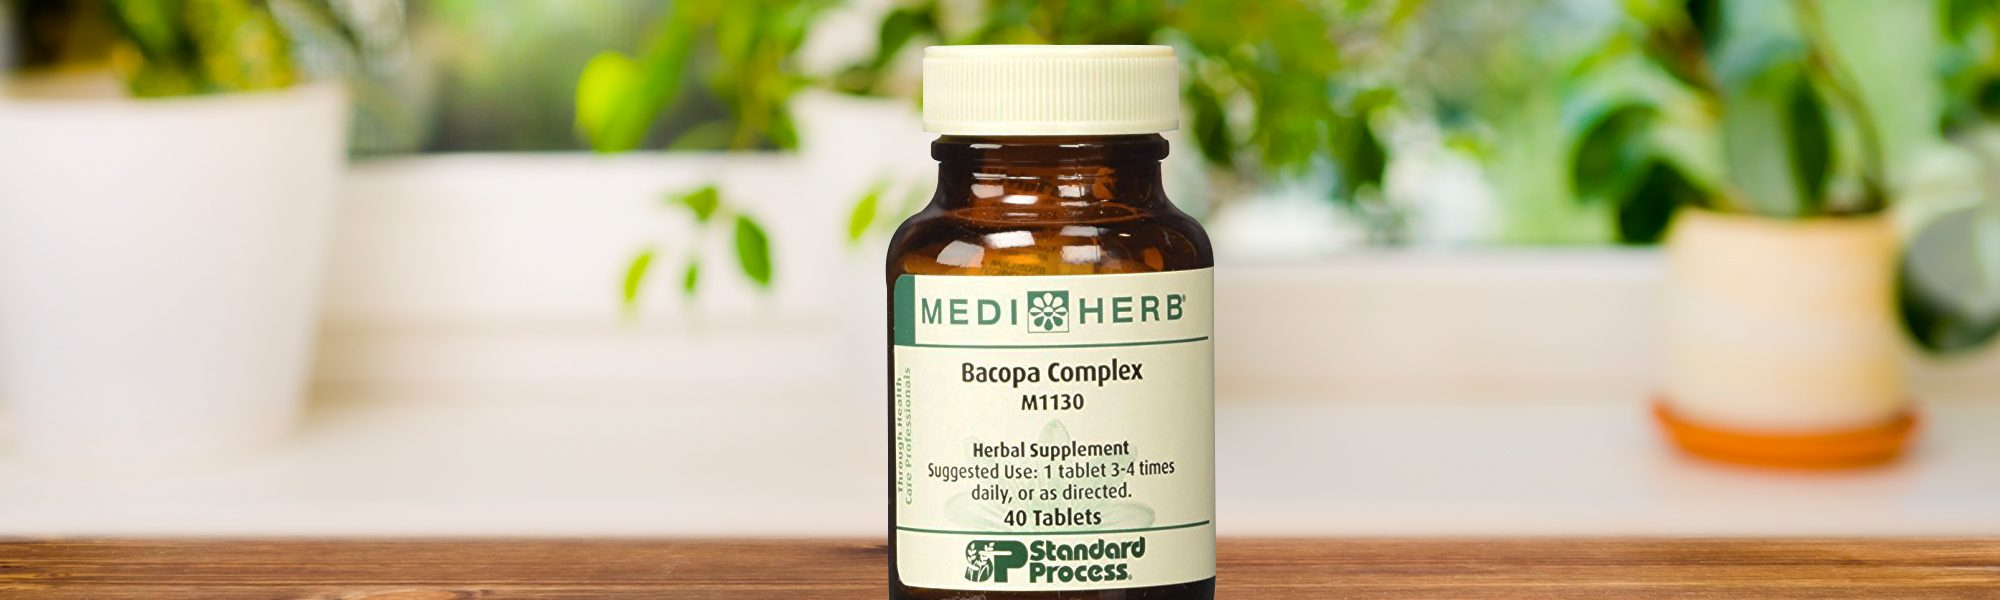 Standard Process Bacopa Complex Review